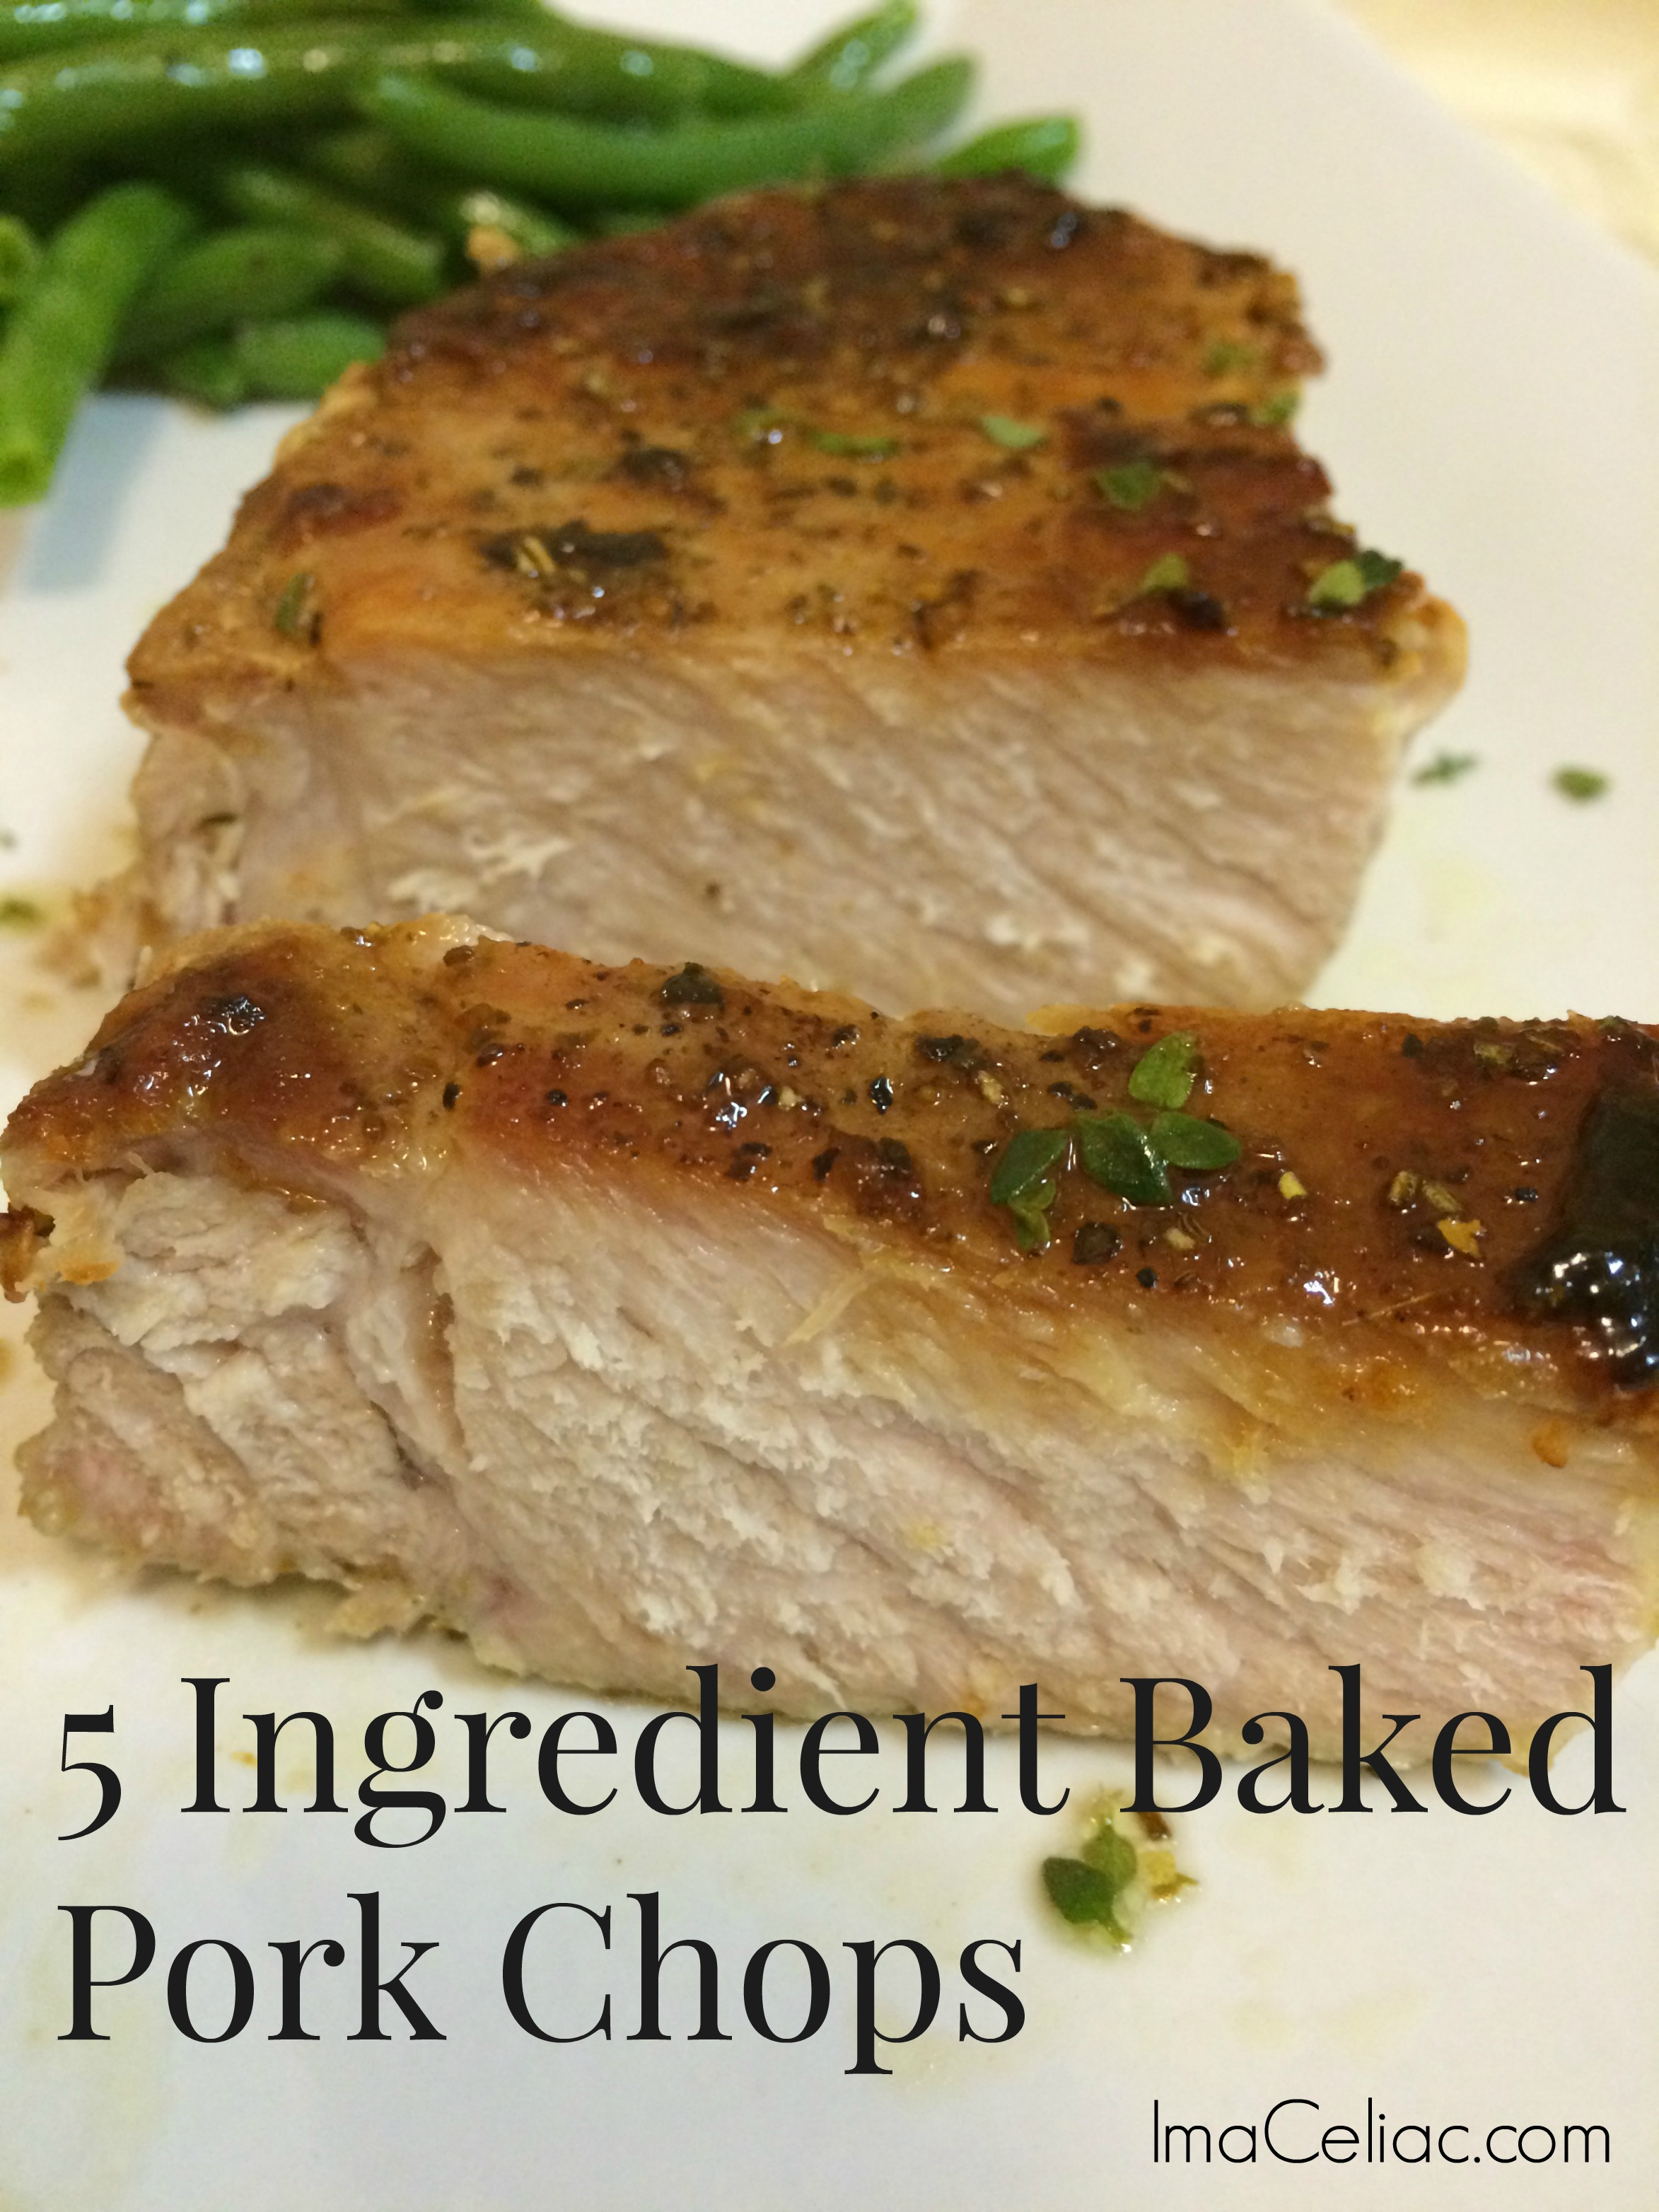 Baked pork chops recipe 450 degrees - Food for health recipes